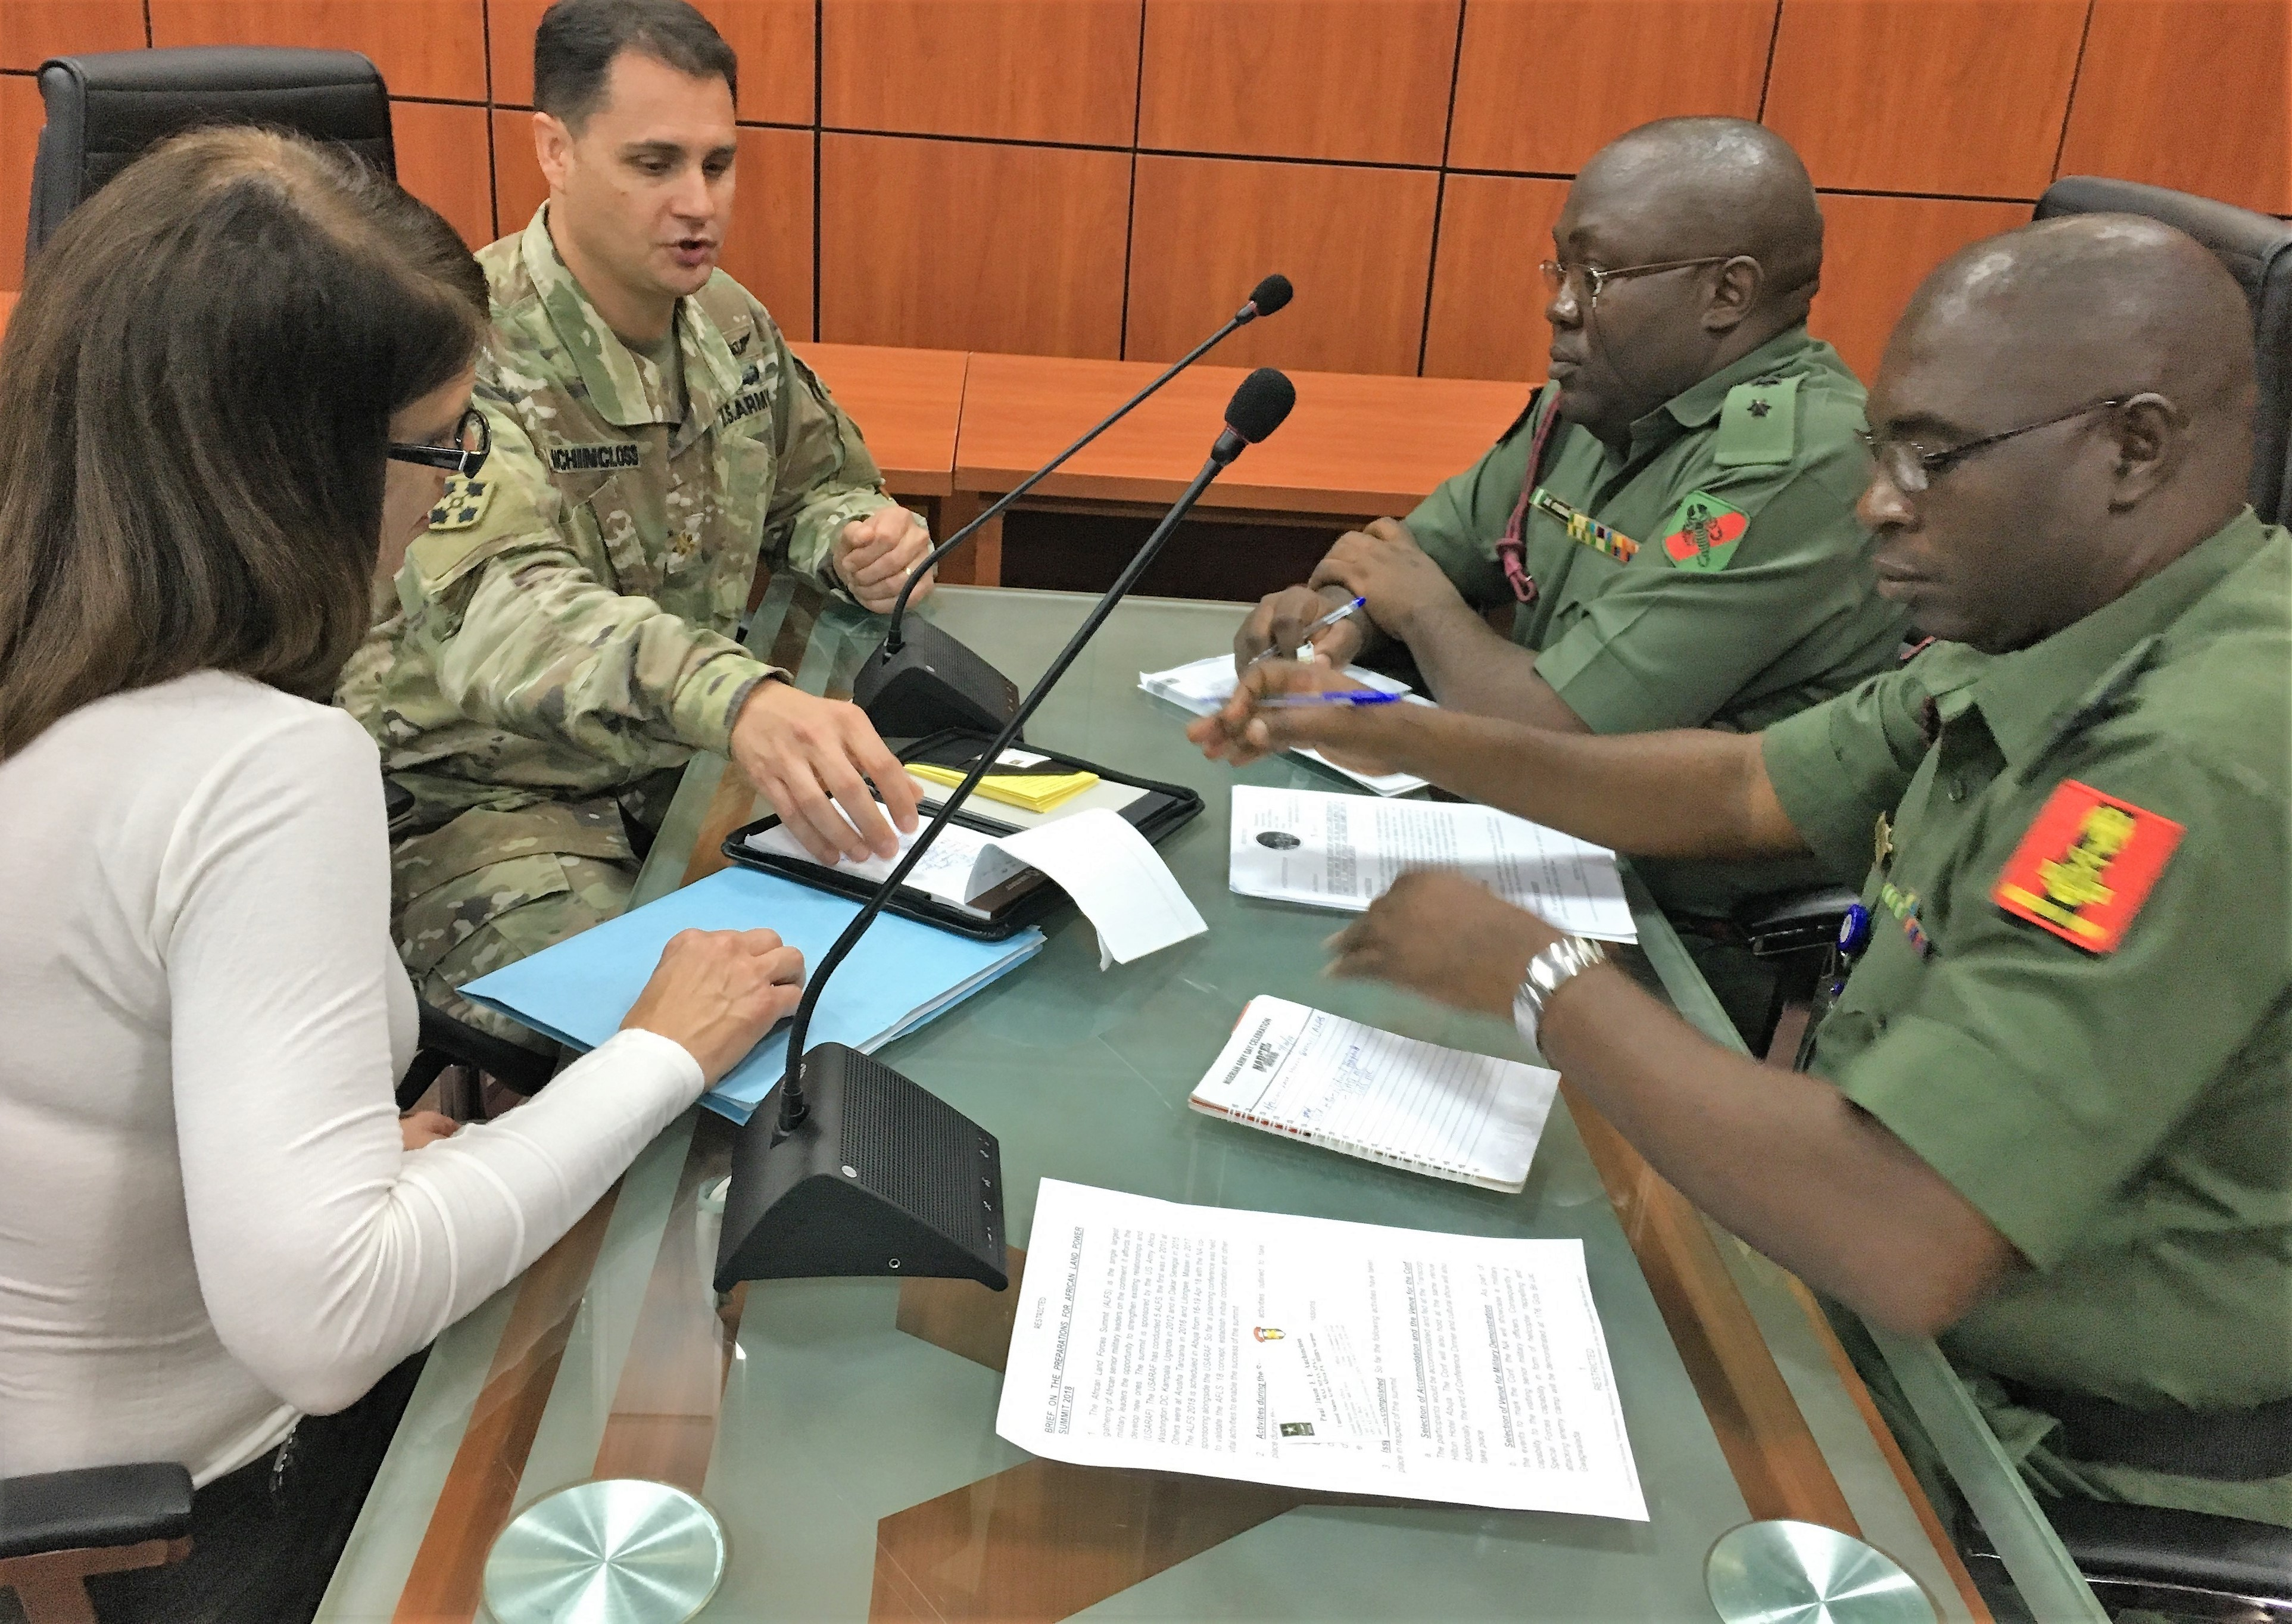 U.S. Army Africa's medical planner Dawn Childs (left), Maj. Jason Auchincloss, Armed Forces Nigeria Lt. Col. Oyebanji and Lt. Col. Ishaku met in Abuja to discuss the medical plan for the upcoming African Land Forces Summit.  ALFS is a weeklong seminar designed to give African land force's chiefs an opportunity to discuss and develop solutions for improving security and stability in their home country. (Photo by Capt. James Sheehan)